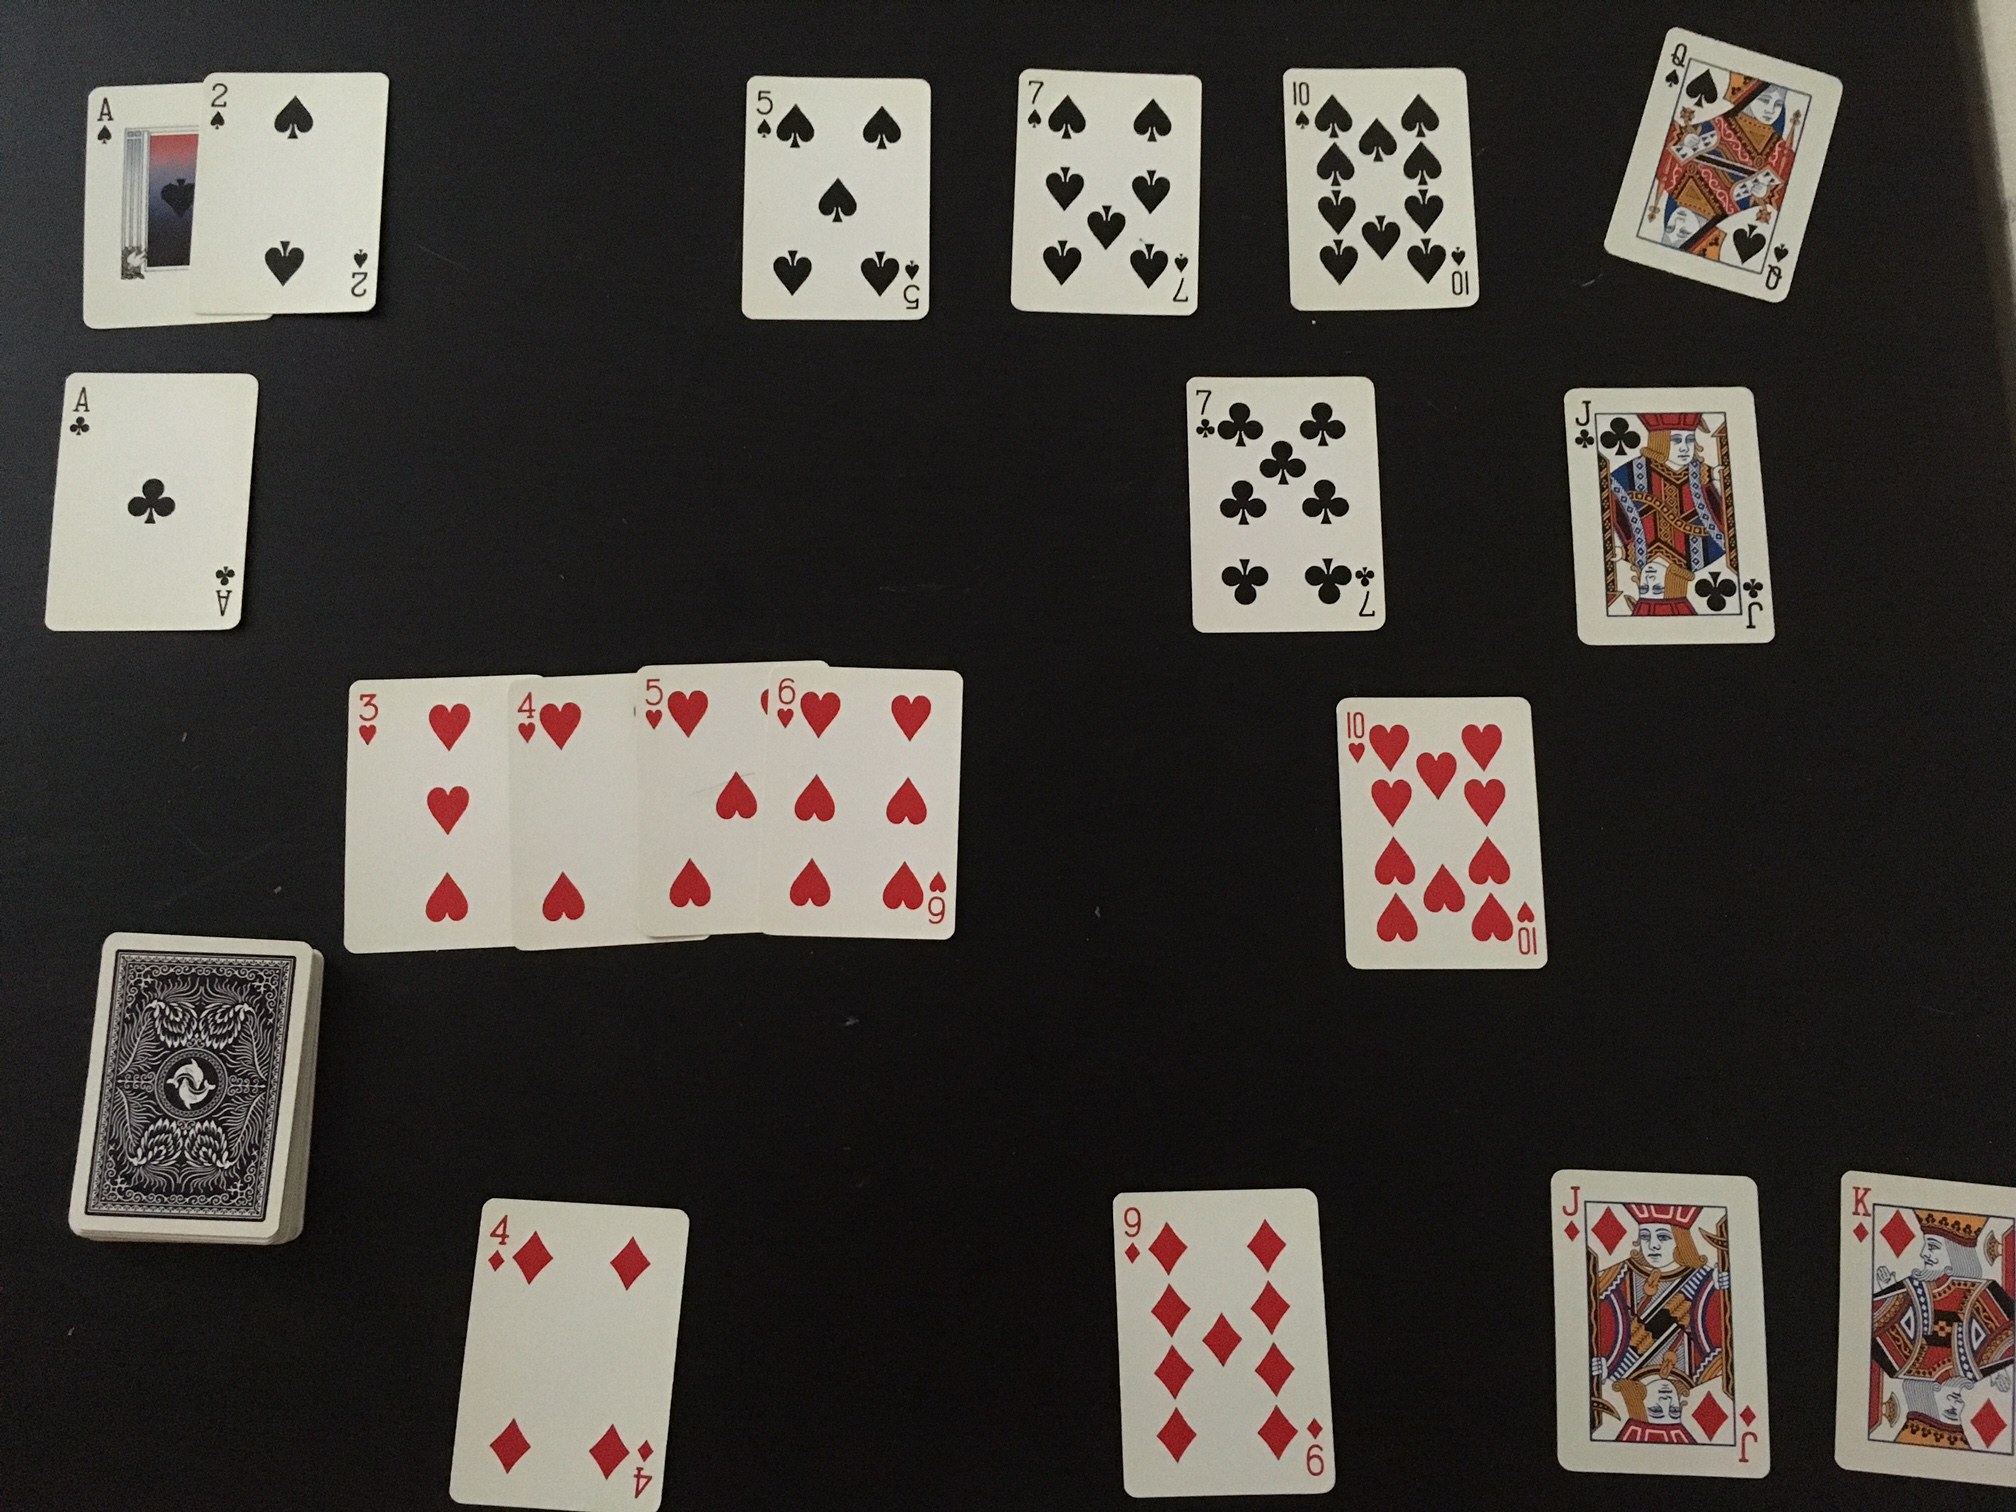 Picture of cards laid out on a table